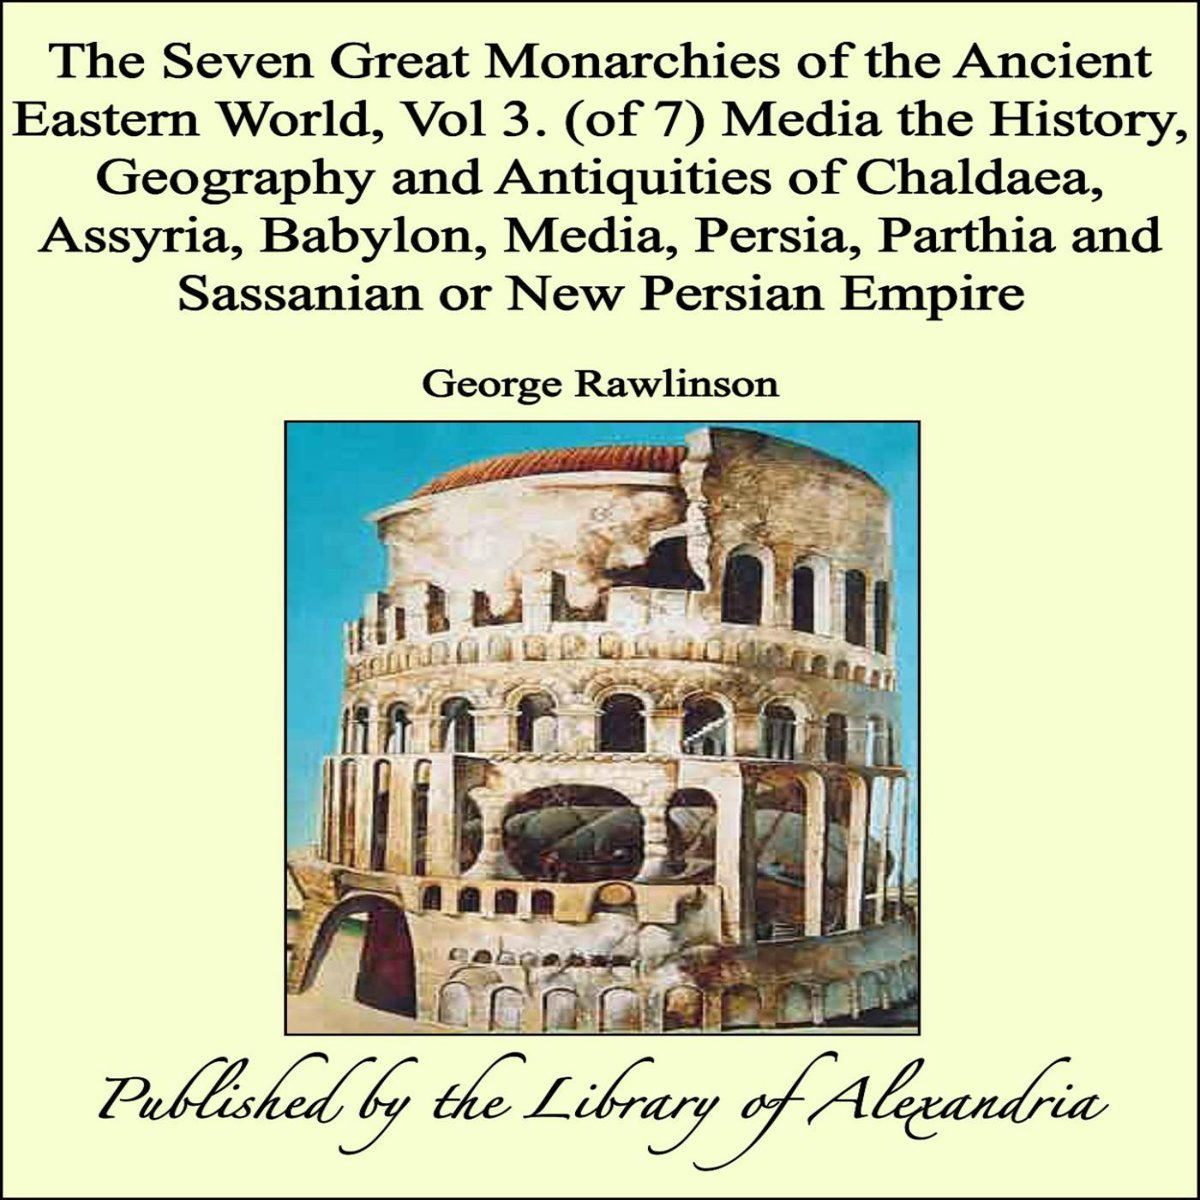 The Seven Great Monarchies of The Ancient Eastern World, Vol 3. (of 7): Media The History, Geography and Antiquities of Chaldaea, Assyria, Babylon, Media, Persia, Parthia and Sassanian or New